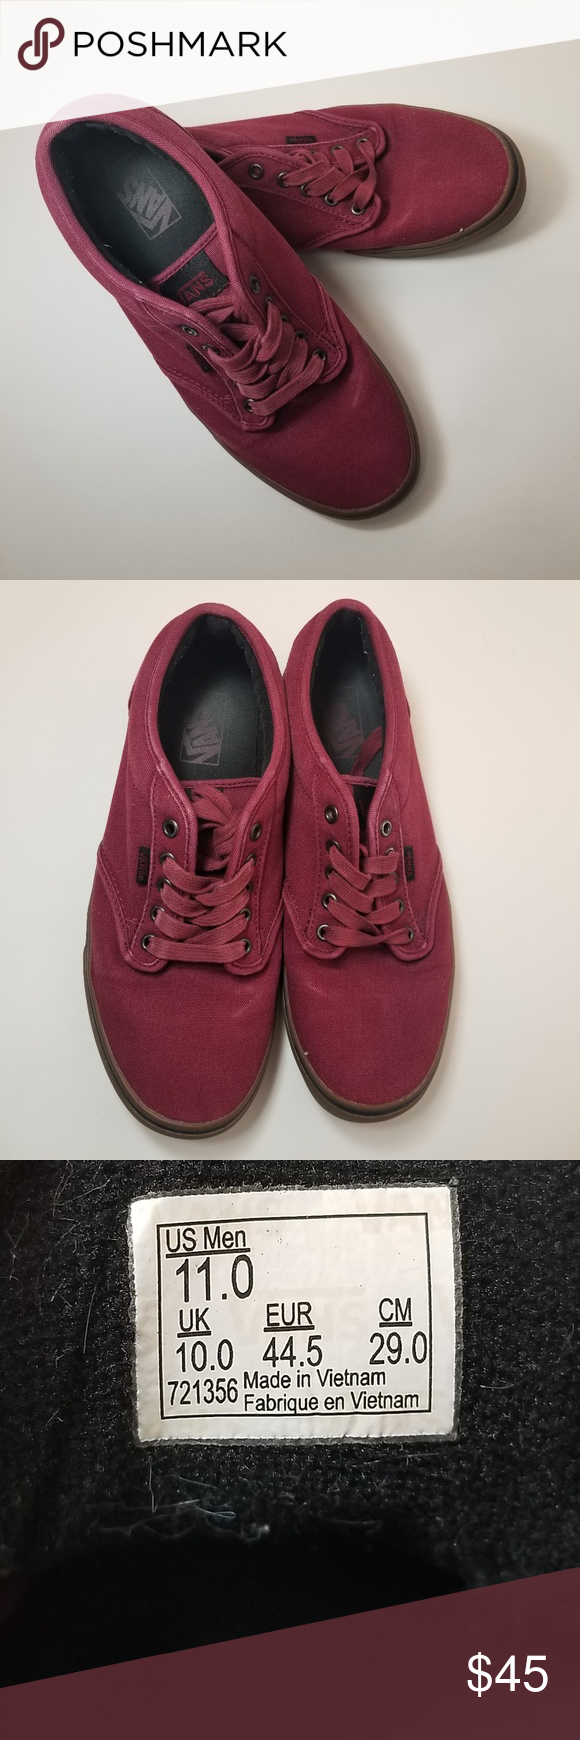 ab114fa6b5bfb3 Vans Men s Atwood Skate Shoe Brand  Vans Style  Atwood Skate Shoe Size  11  Color  Cordovan Gum (Maroon) Material  Canvas and Rubber Condition  Used -  Good ...